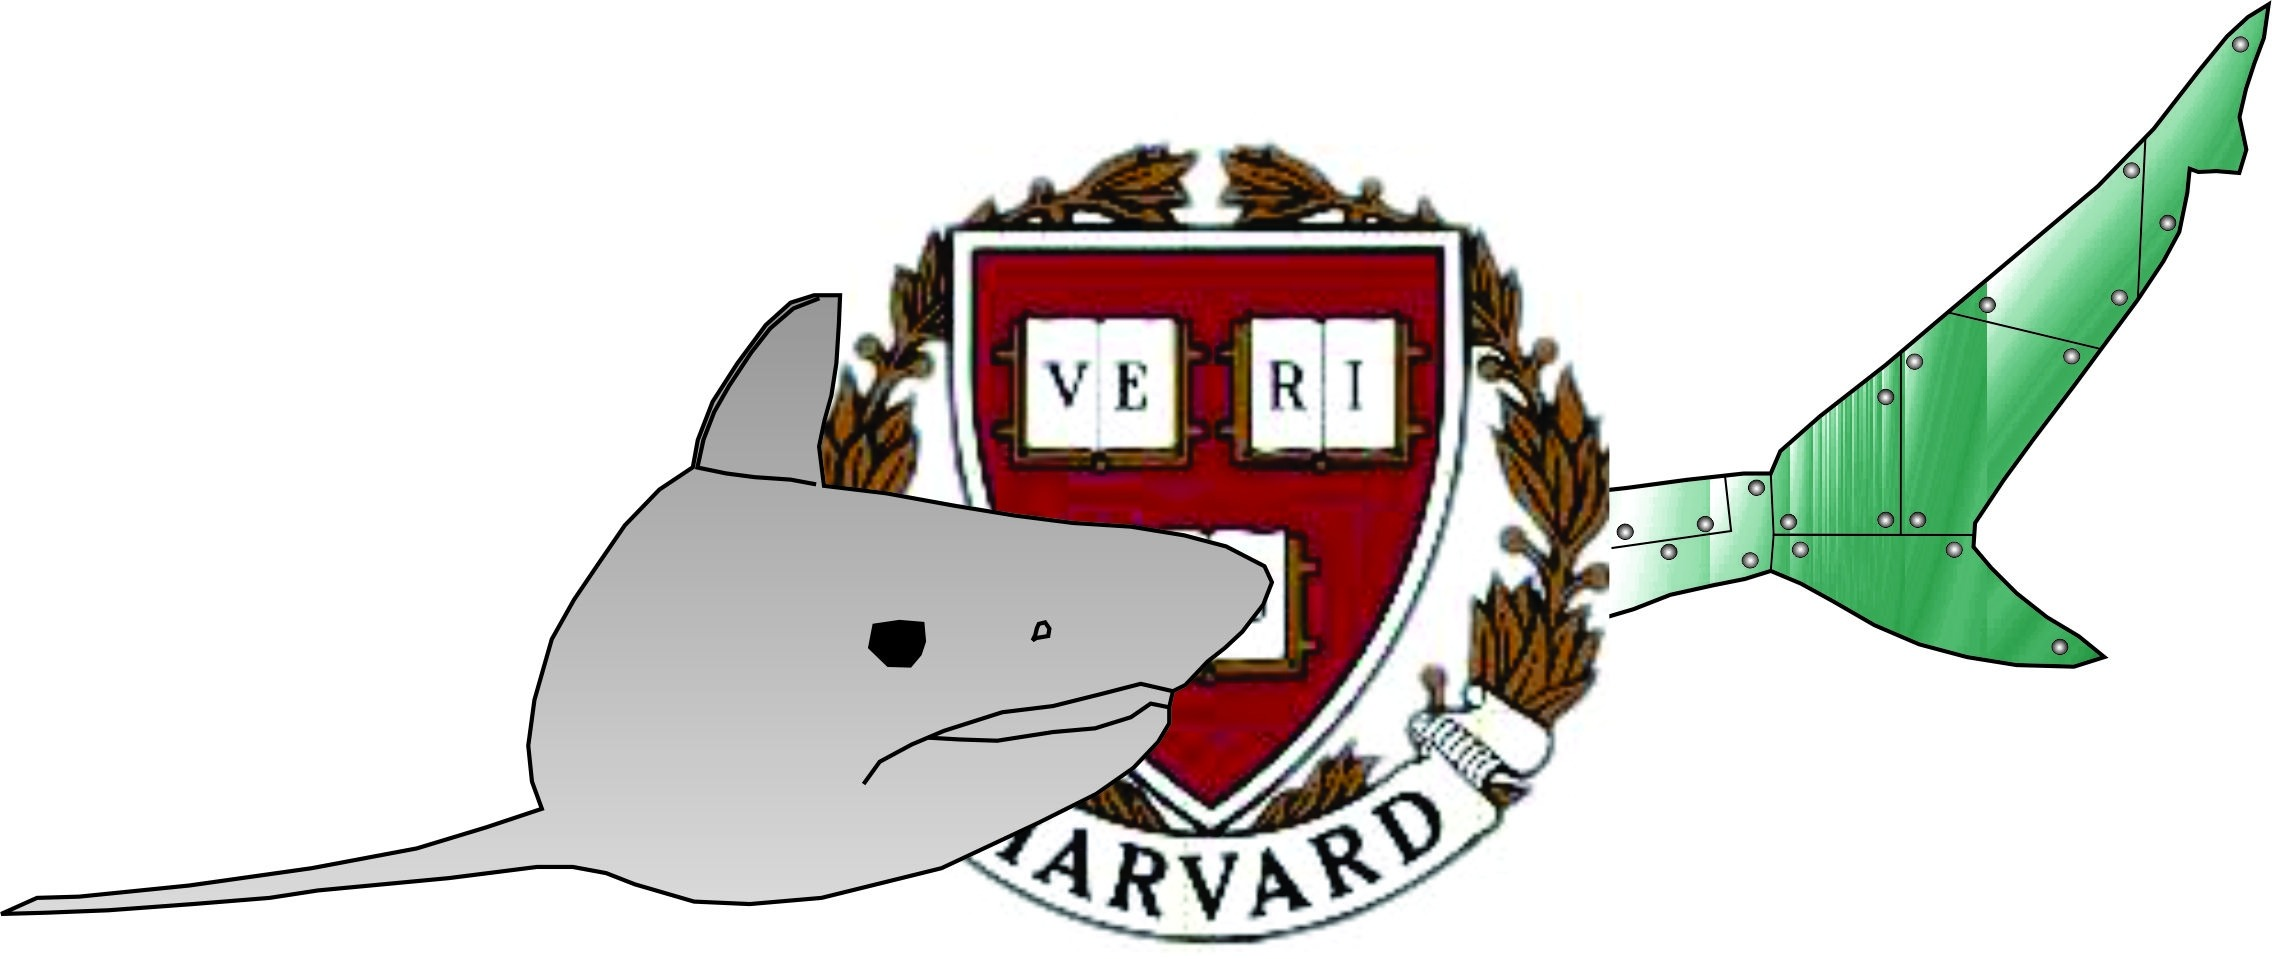 Fluid Locomotion research at Harvard University